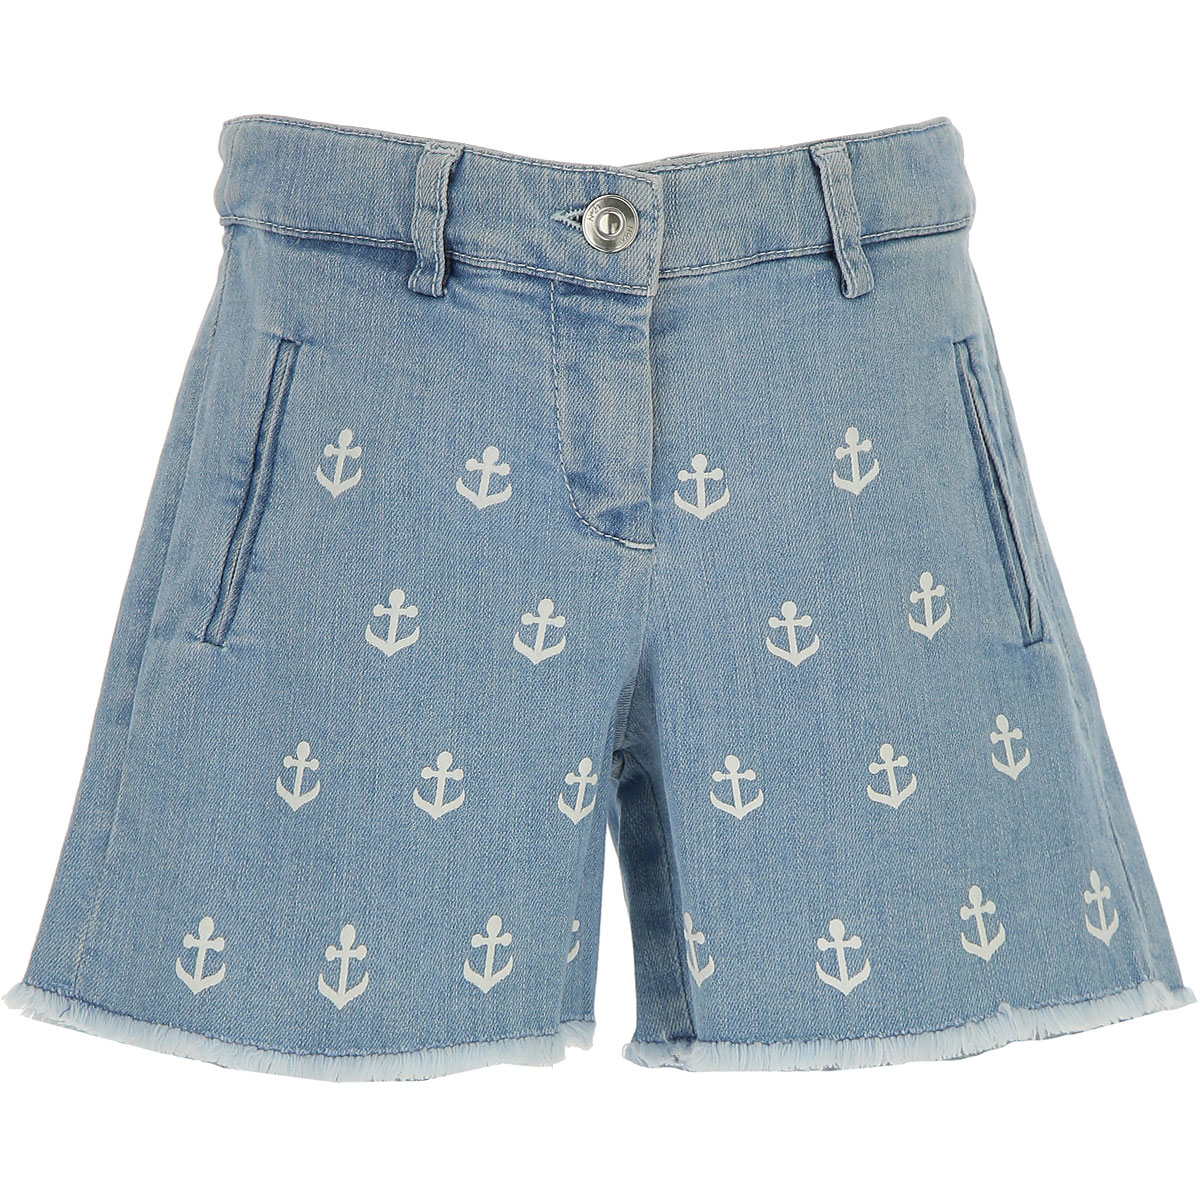 NO 21 Kids Shorts for Girls On Sale in Outlet, Blue Denim, Cotton, 2019, 30 (6 Years) 36 (9 Years) 44 (14 Years)